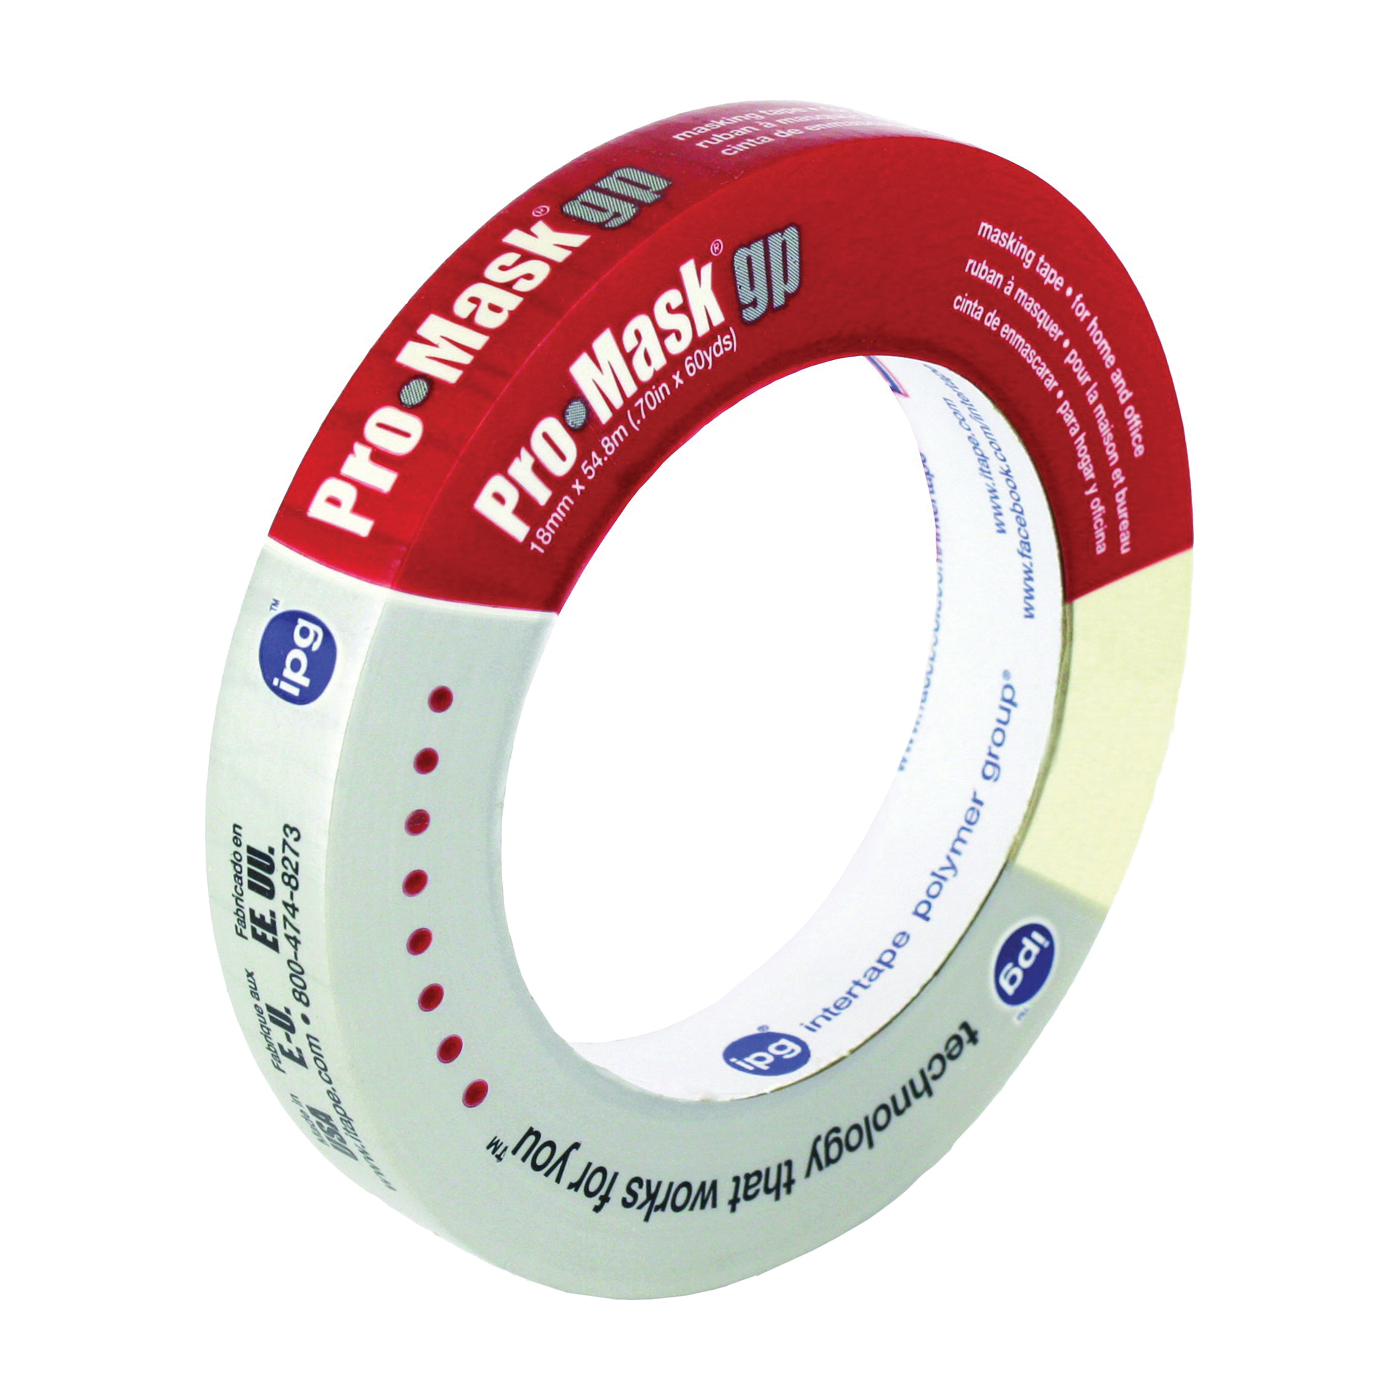 Picture of IPG 5100-.75 Masking Tape, 60 yd L, 0.7 in W, Smooth Crepe Paper Backing, Beige